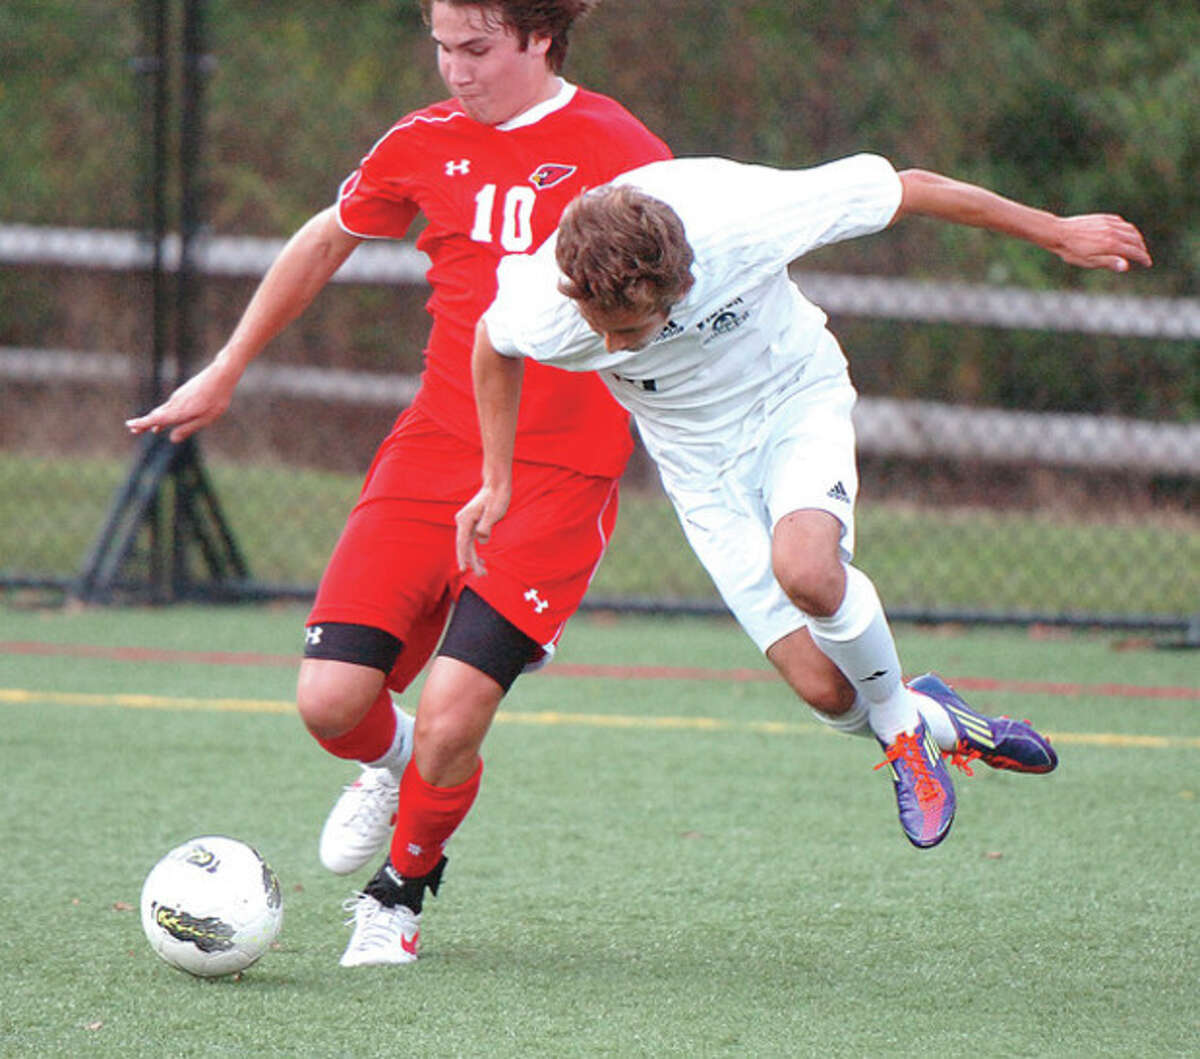 Hour photo/Alex von Kleydorff Wilton boys soccer player Robert Aravena, right, fights for possession of the ball with Greenwich's Ryan Flippin during Thursday's FCIAC game at Lilly Field. The two teams played to a 1-1 tie.